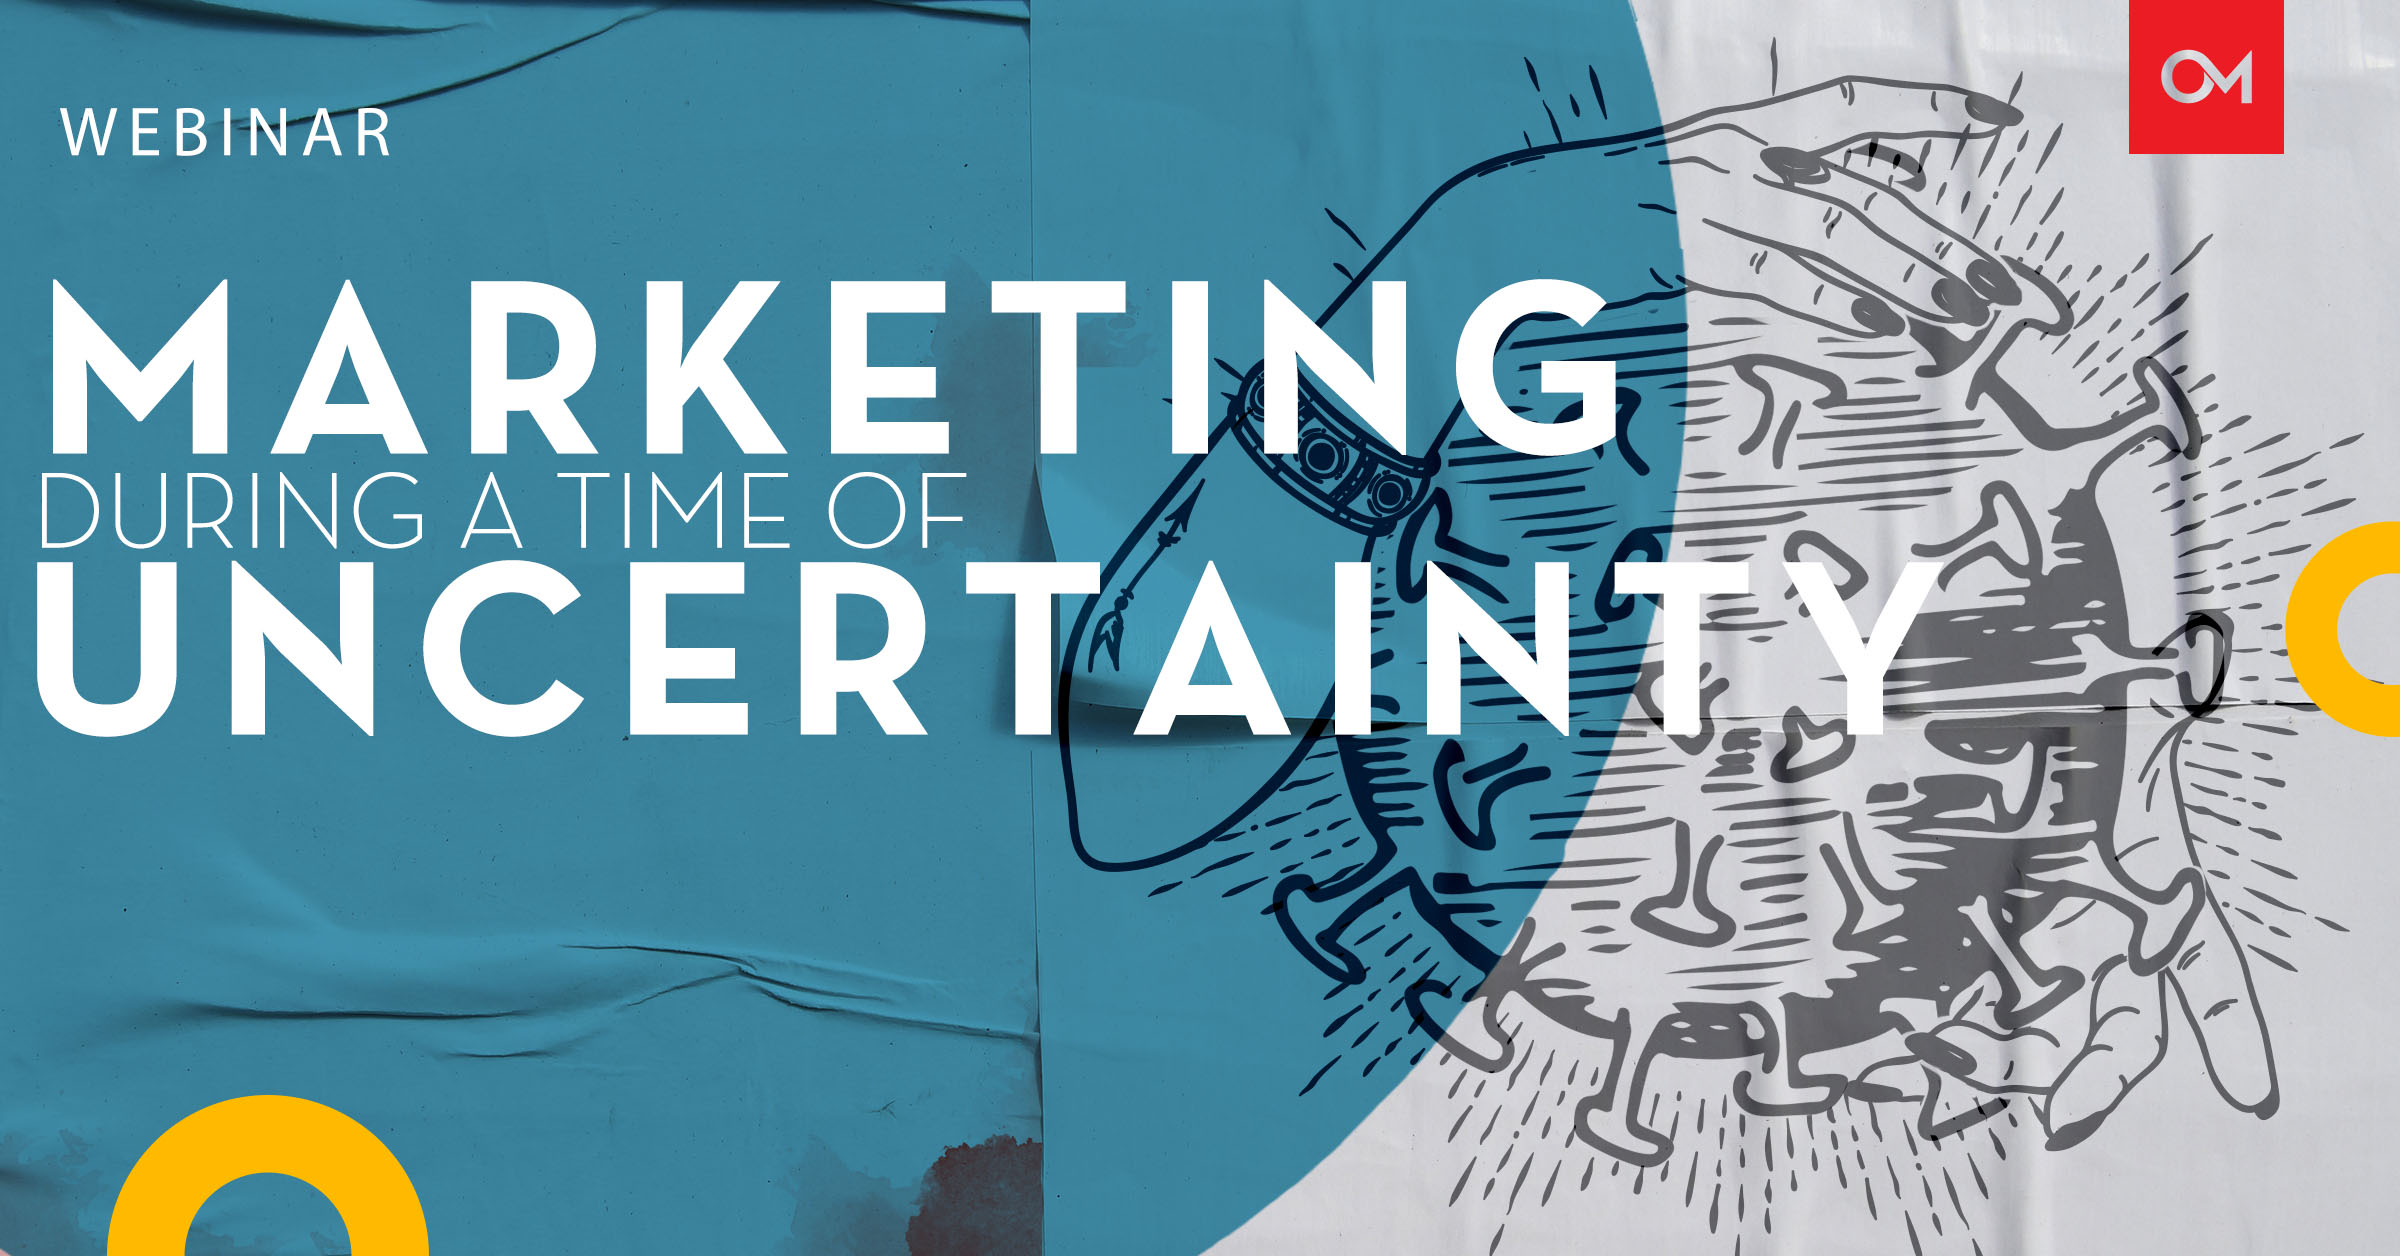 Webinar: Marketing During a Time of Uncertainty